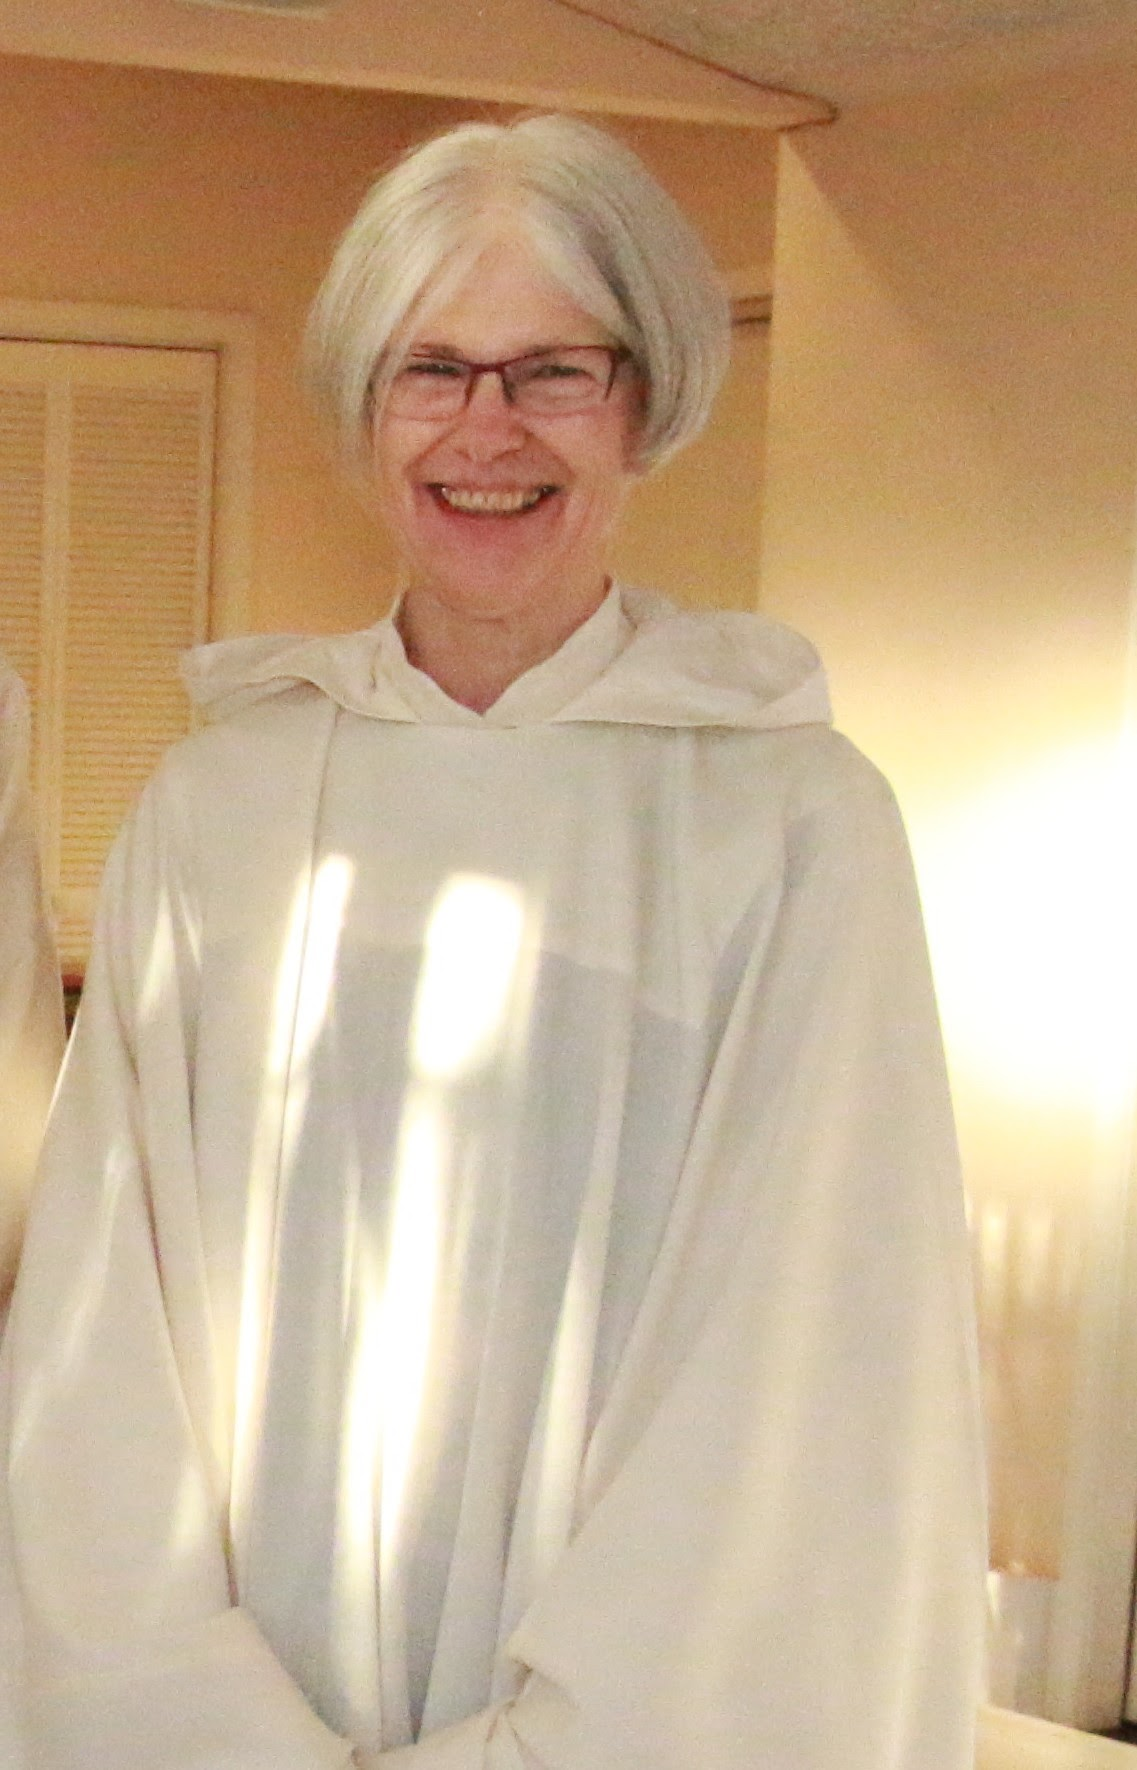 Sister Suzanne, OCSO, Vocation Director, Redwoods